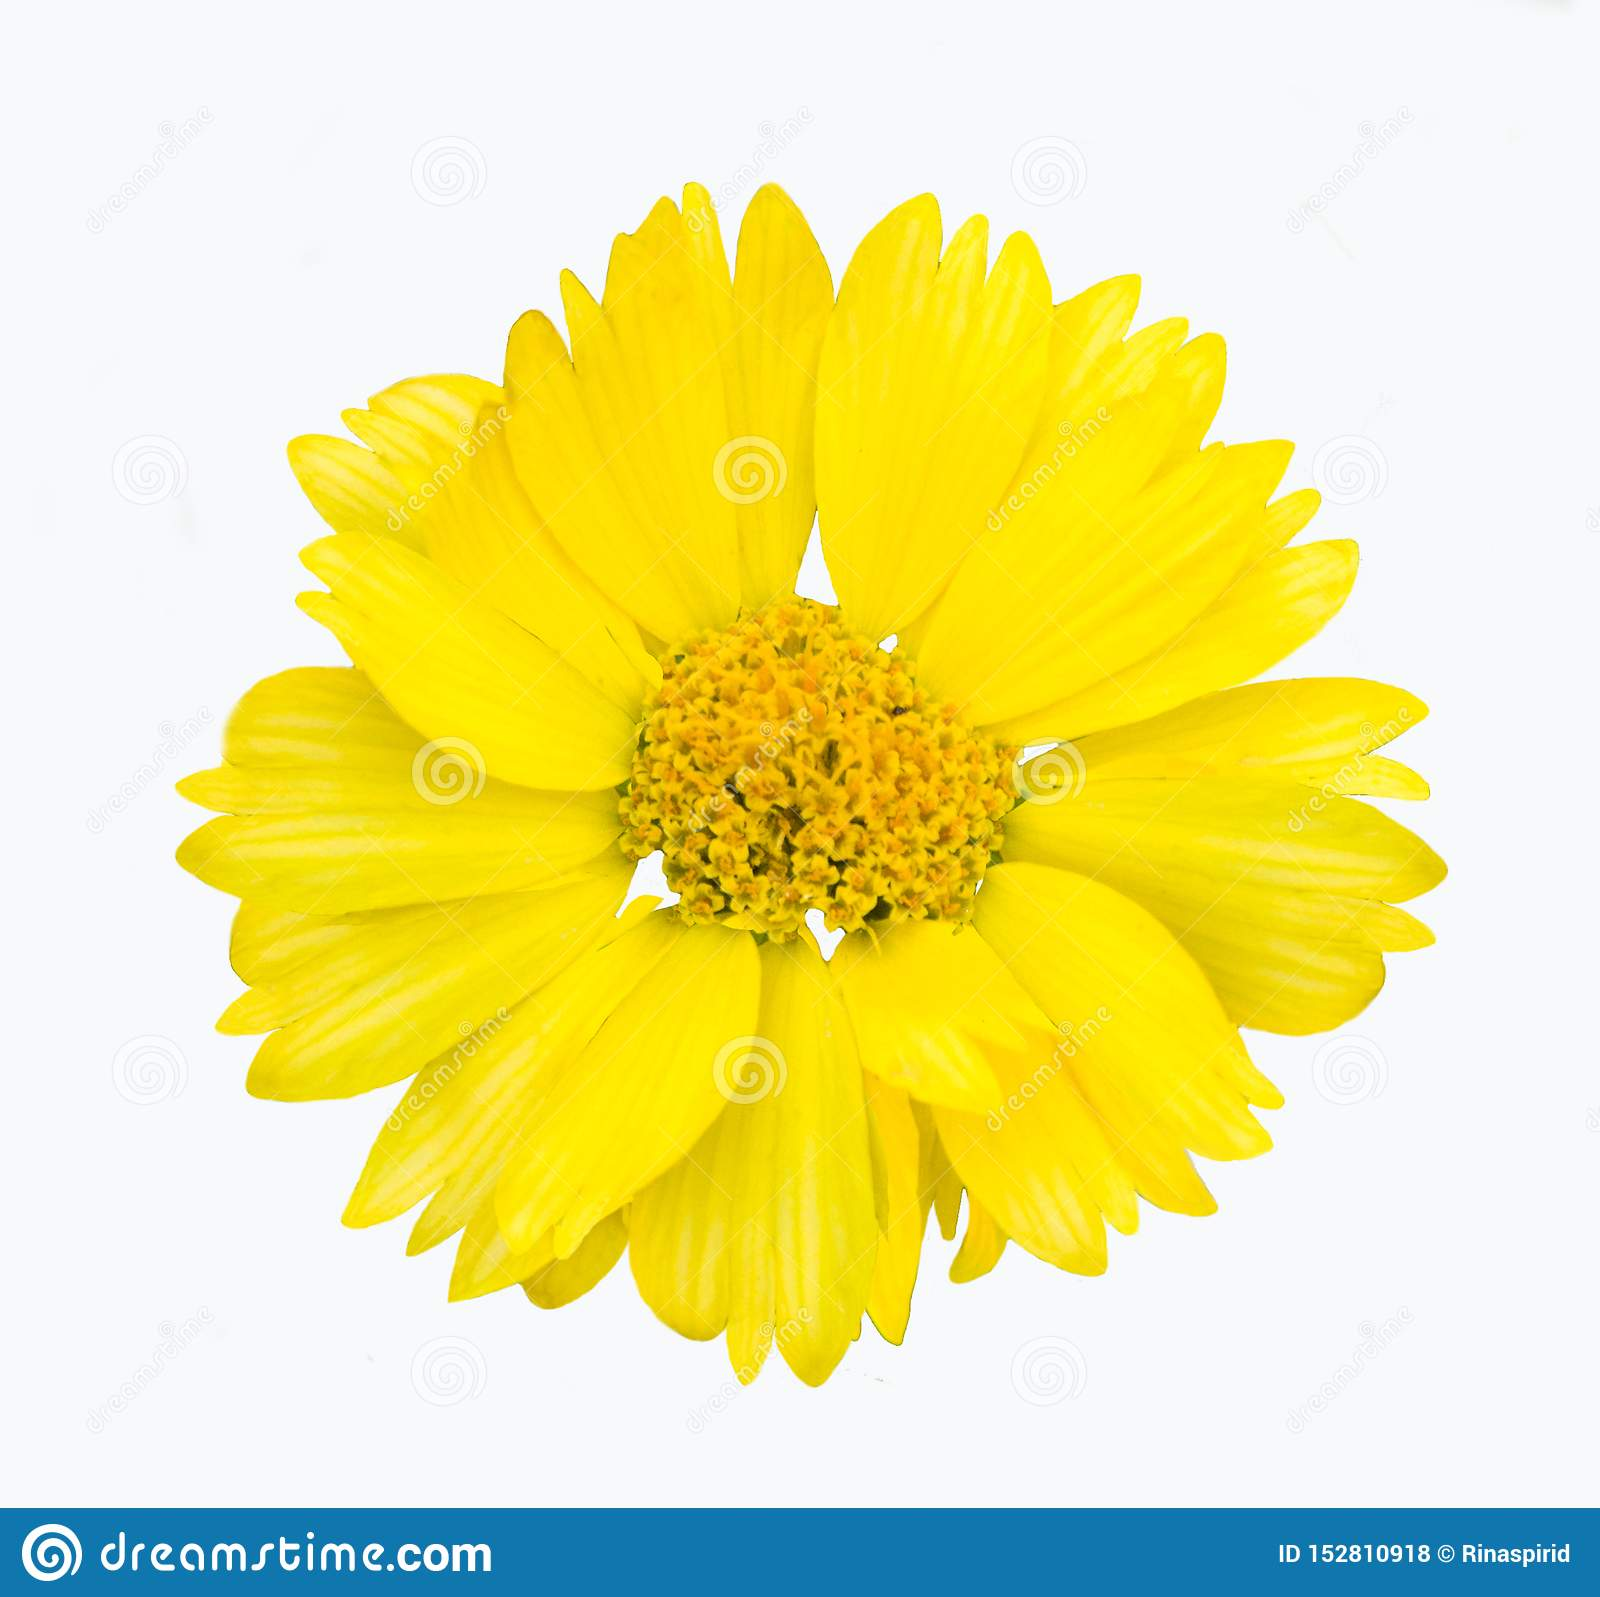 Yellow flower isolate